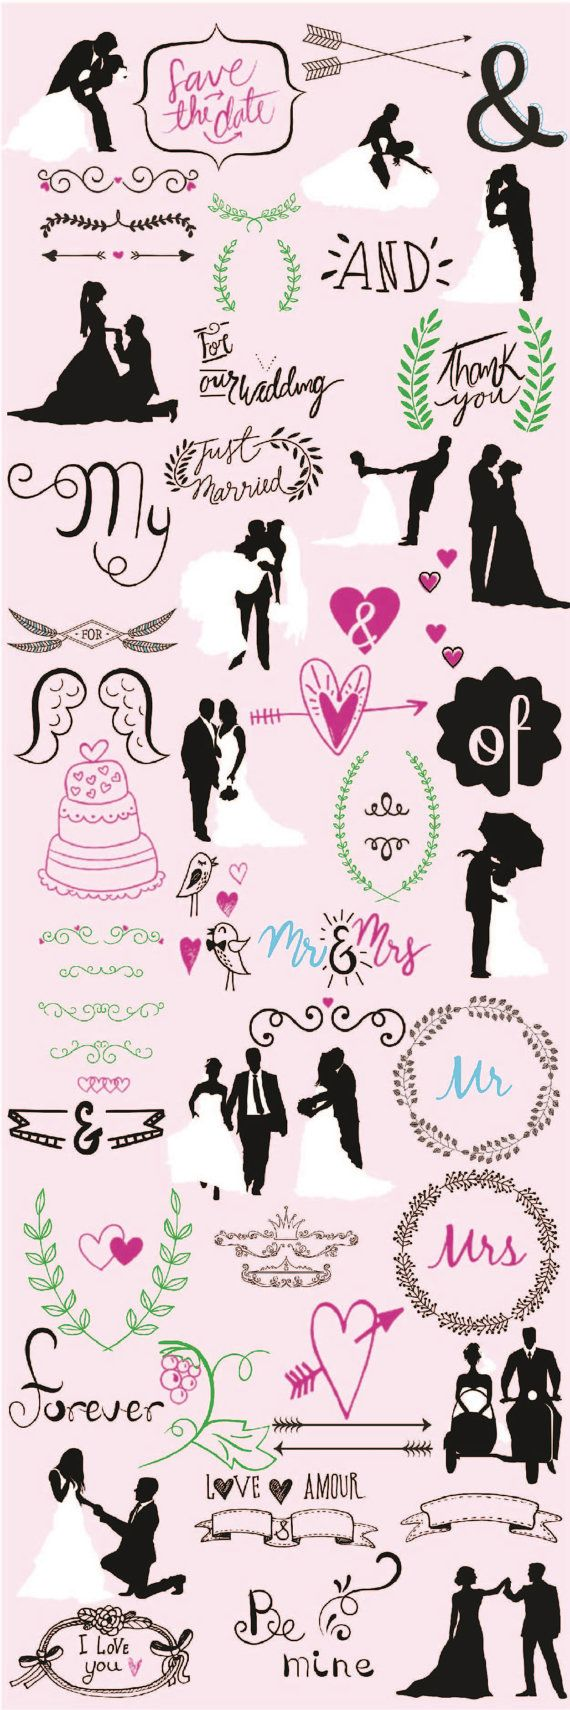 Wedding svg ultimate wedding designs bundle diy vector design wedding svg ultimate wedding designs bundle diy vector designwedding invitation mr and mrs silhouette files cricut vector designs junglespirit Image collections